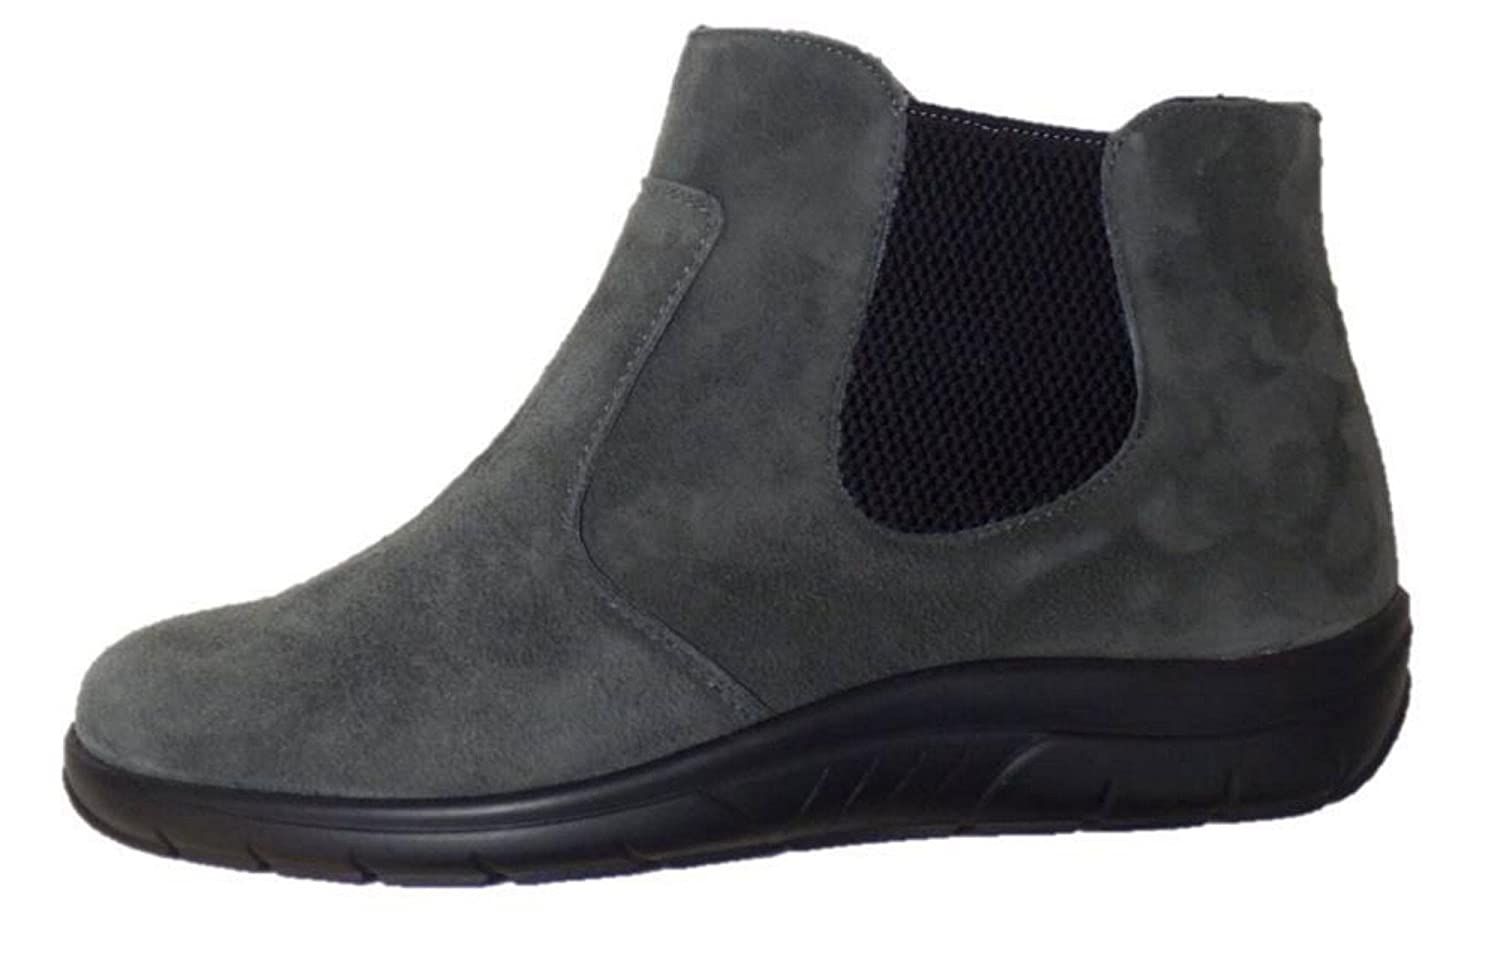 Chelsea Chelsea Chelsea Boot Stiefelette Semler Weite H grau - 6aef18